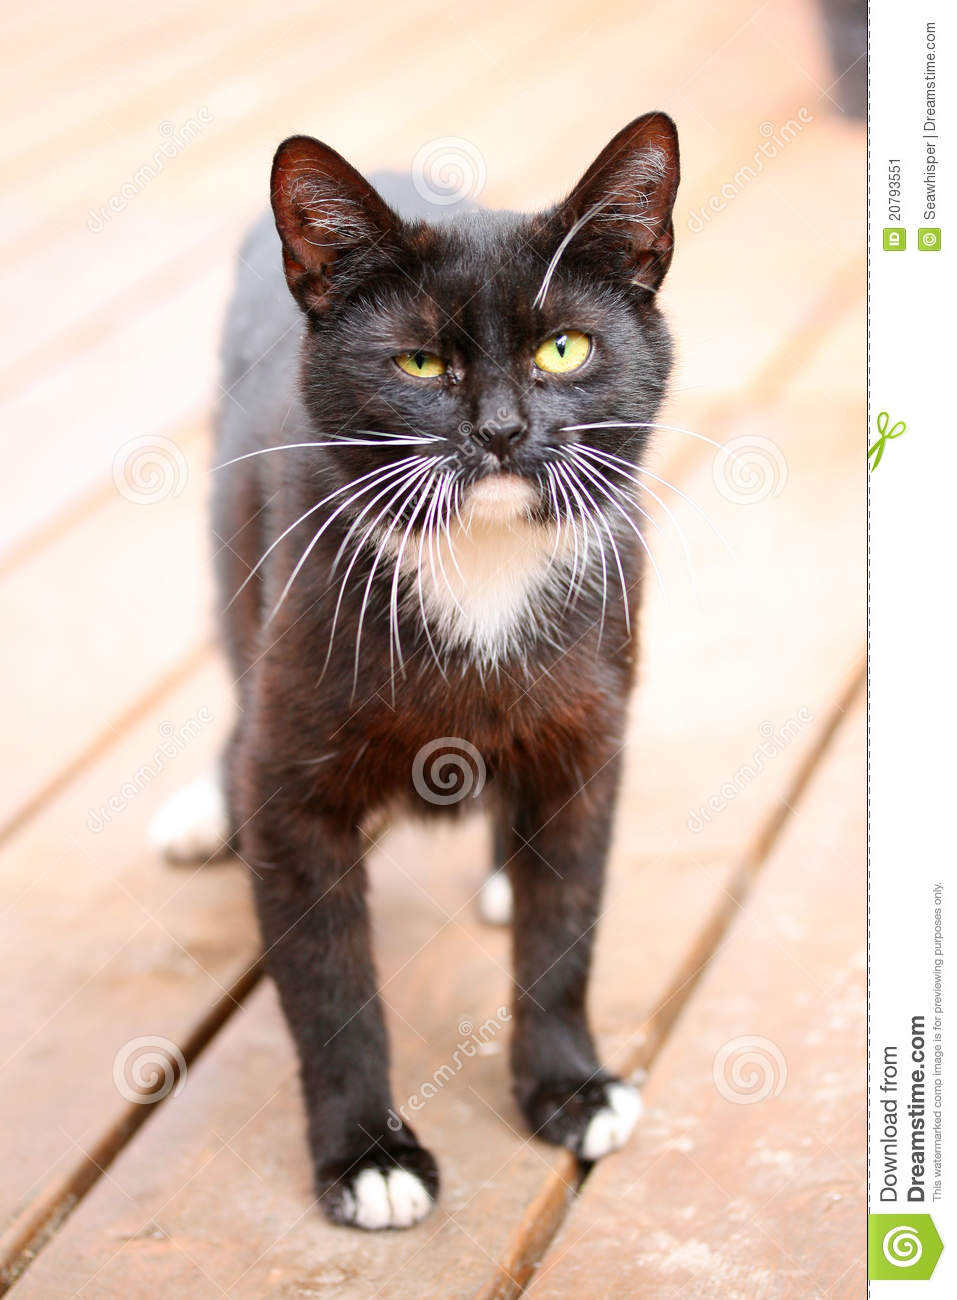 Funny Looking Black Cat Stock Image - Image: 20793551